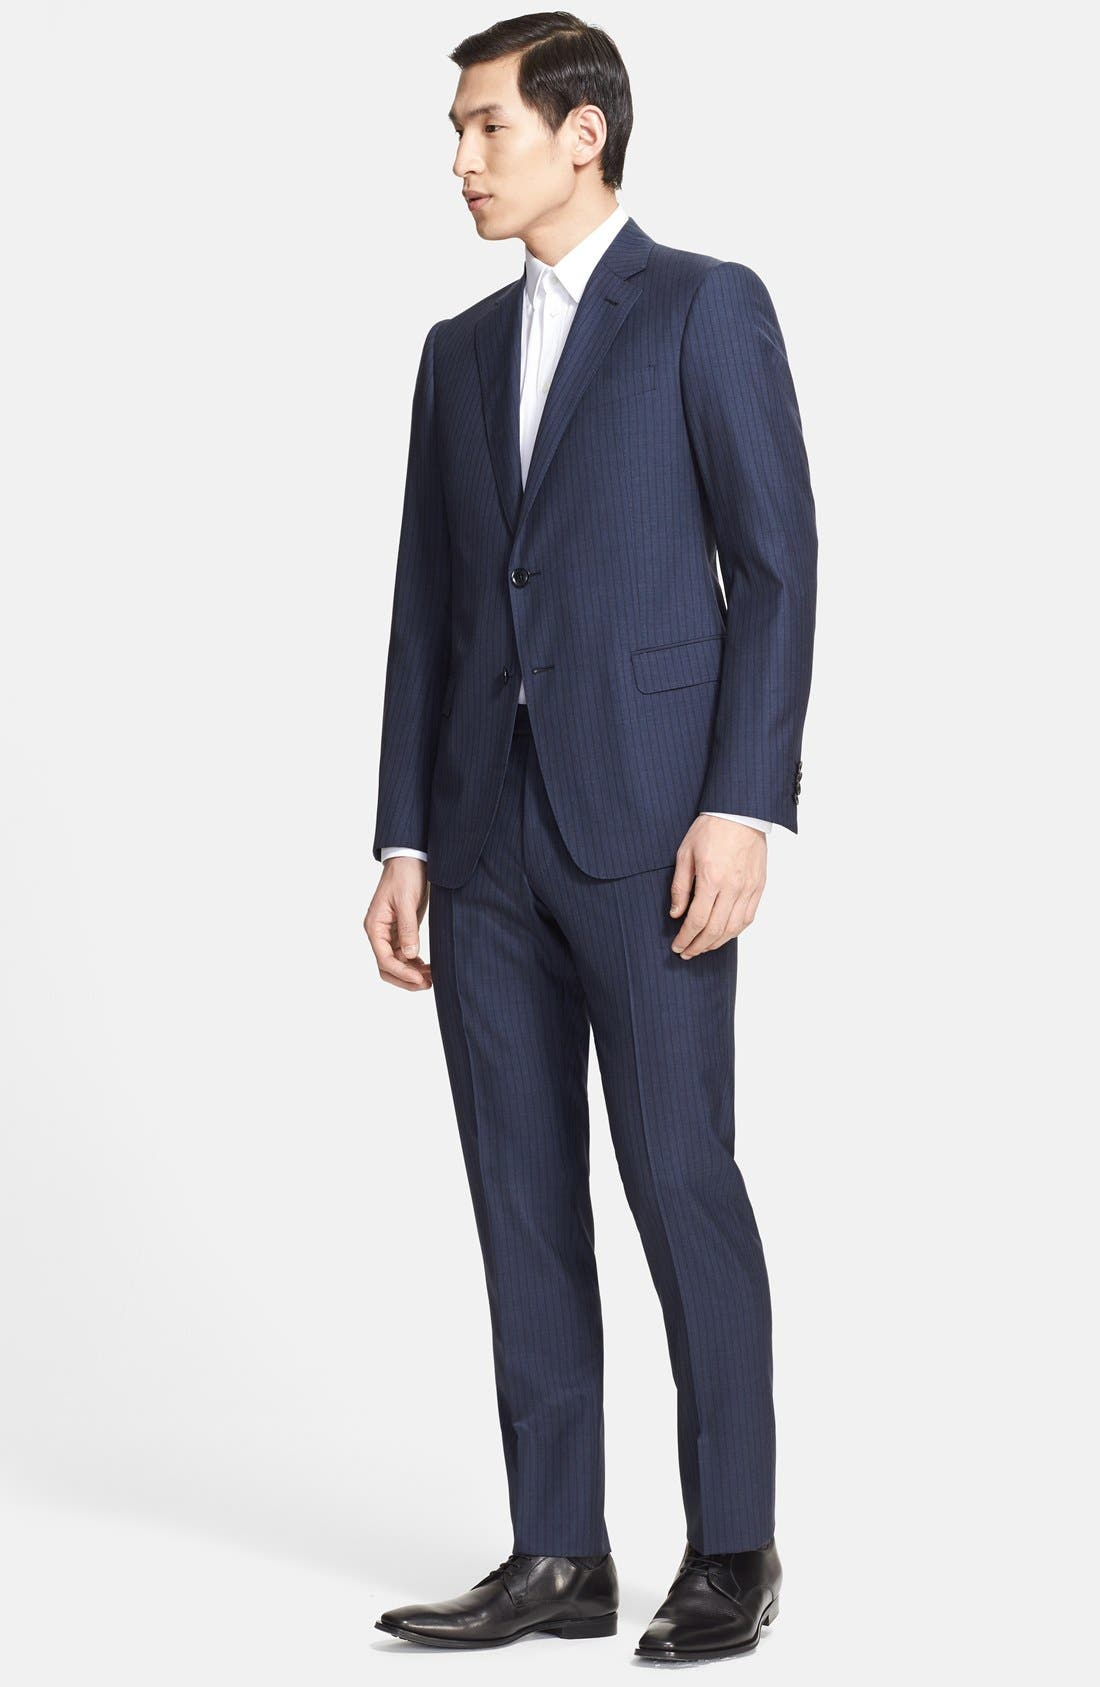 Alternate Image 1 Selected - Armani Collezioni 'Sartorial' Pinstripe Wool Blend Suit